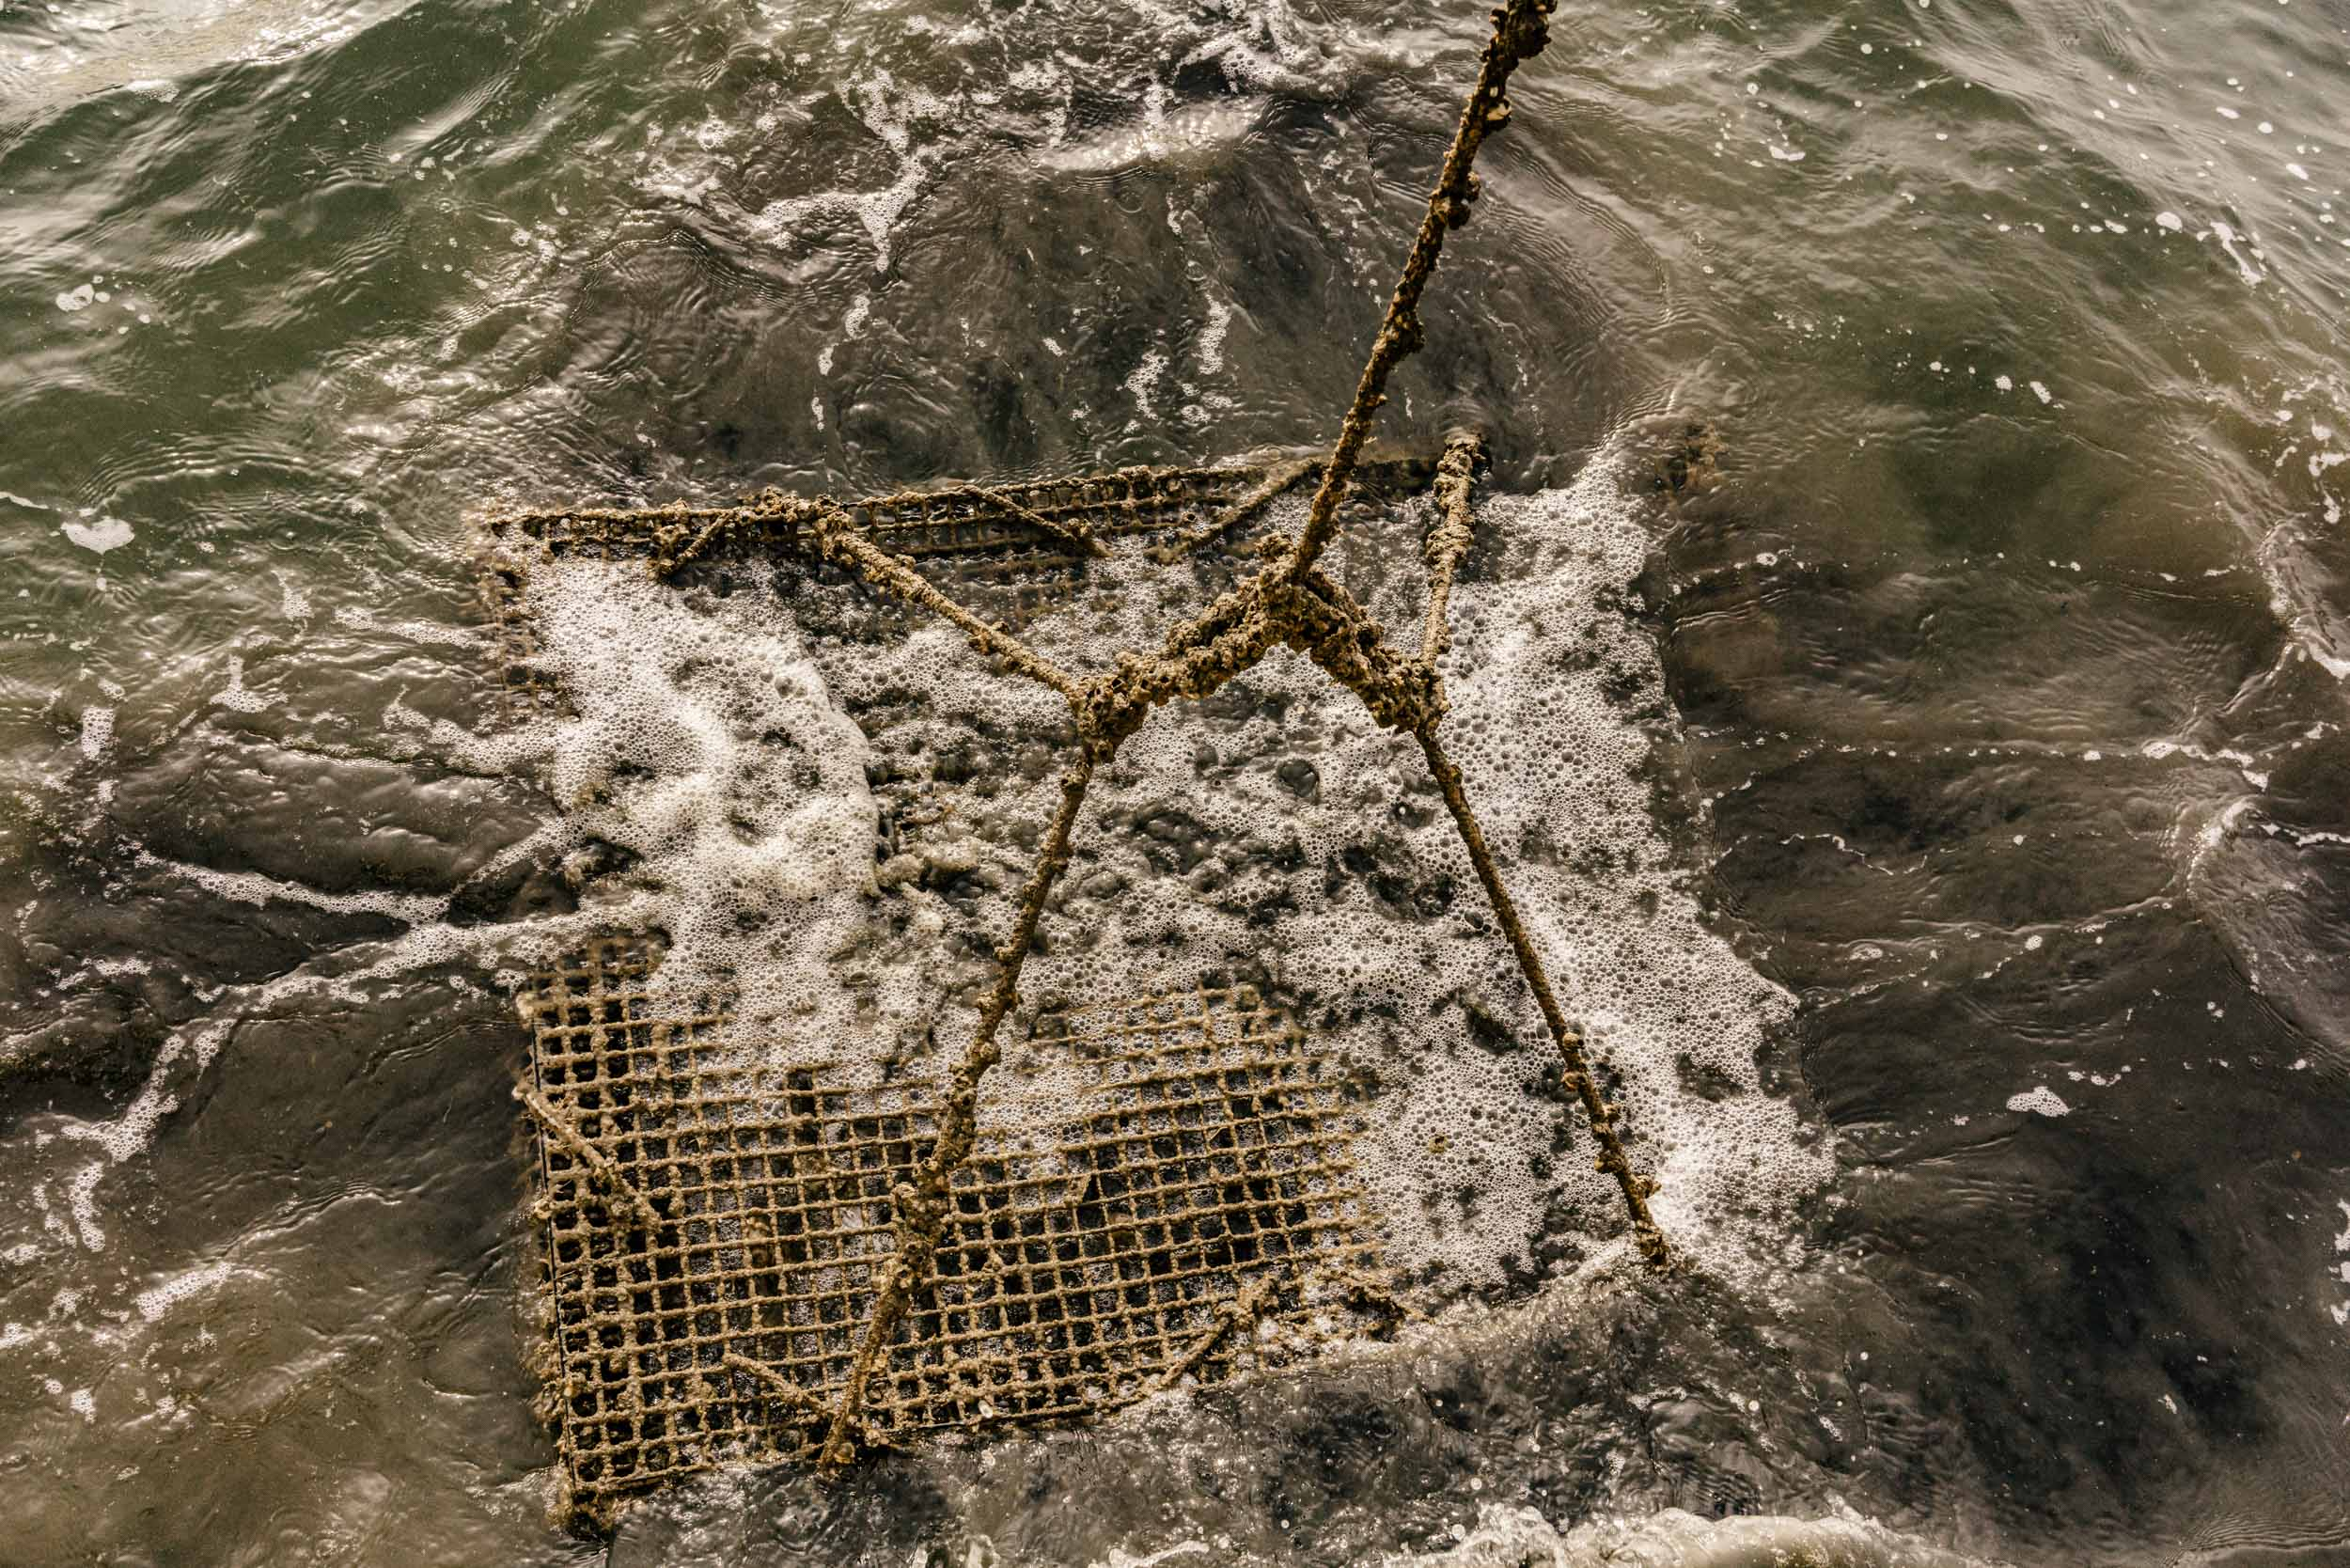 oyster crate emerging from water